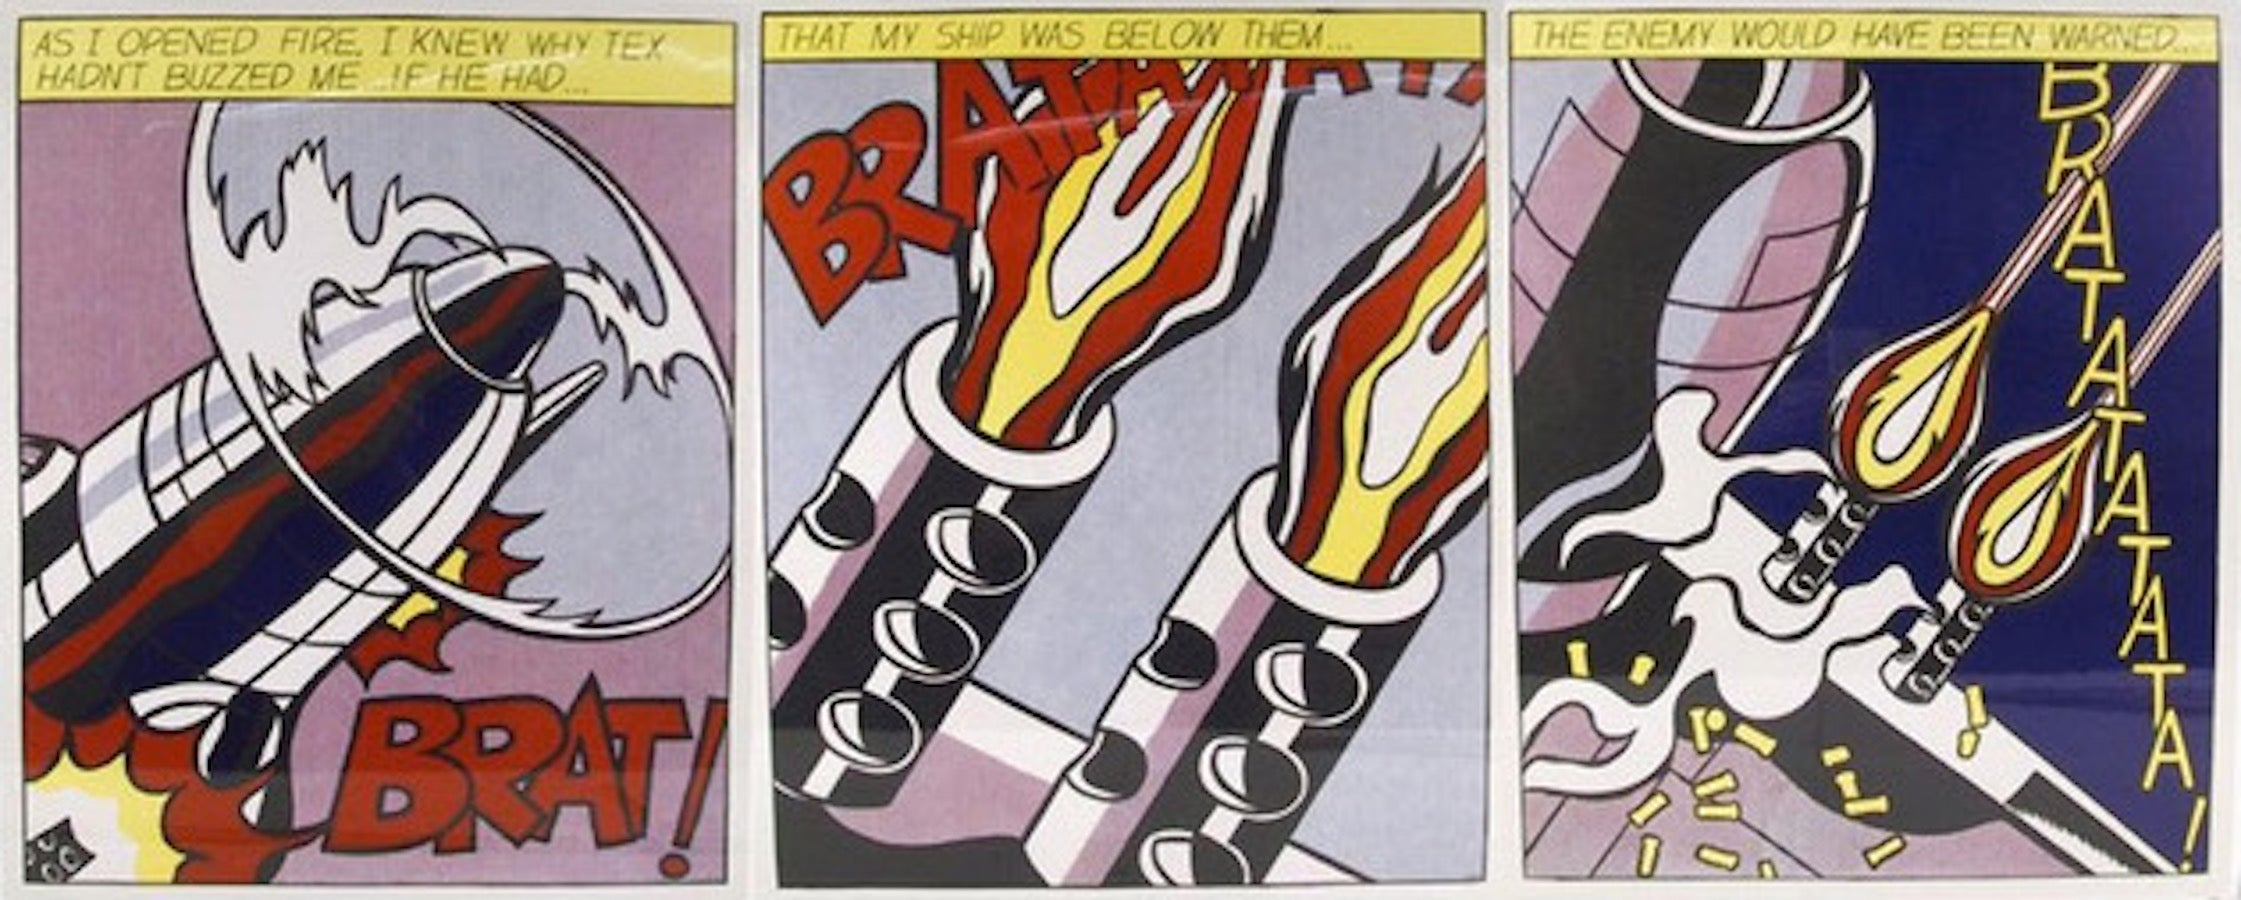 As I Opened Fire (Triptych) - Original Offset and Lithograph - 1998